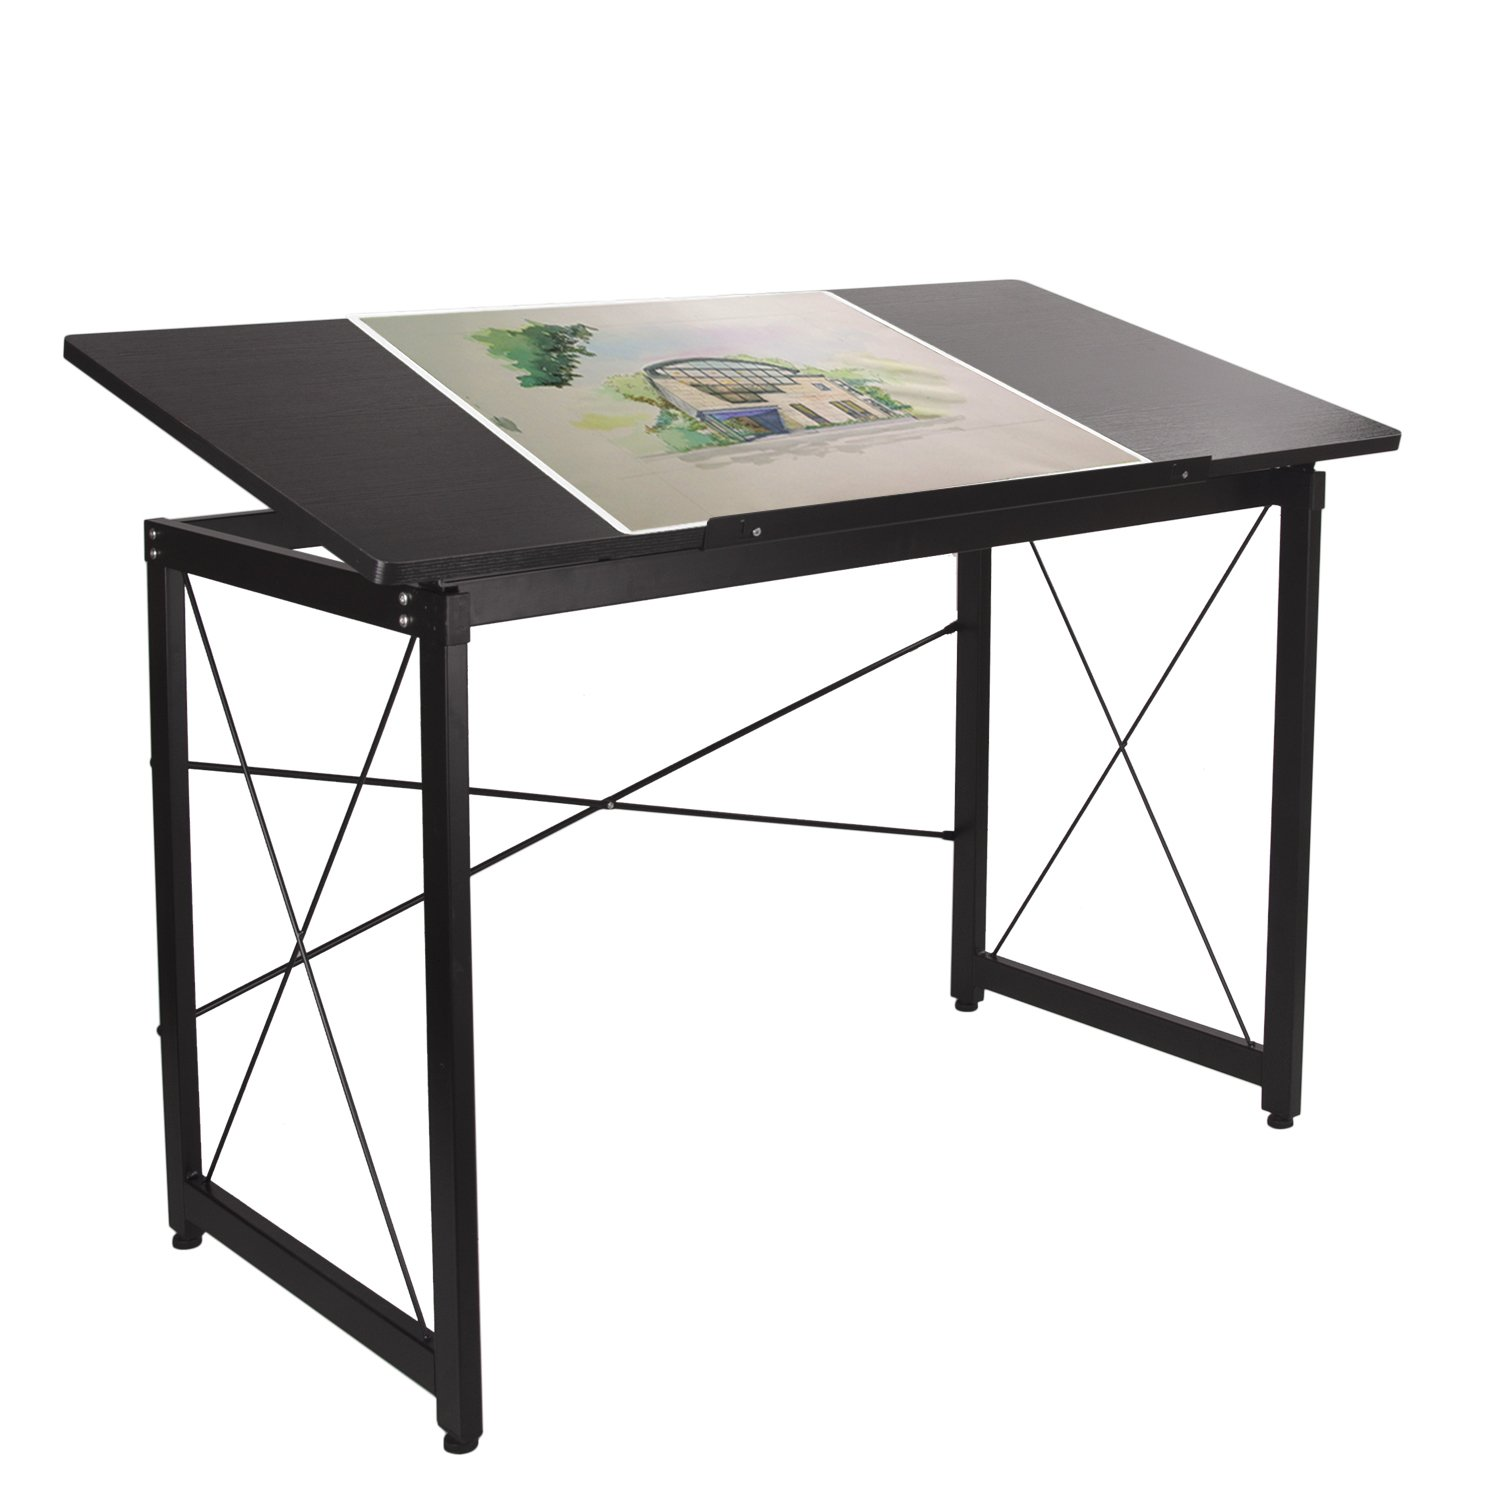 Elevens 47 Adjustable Drafting Table – Art and Craft Drawing Folding Desk – Reading Writing Work Station Black